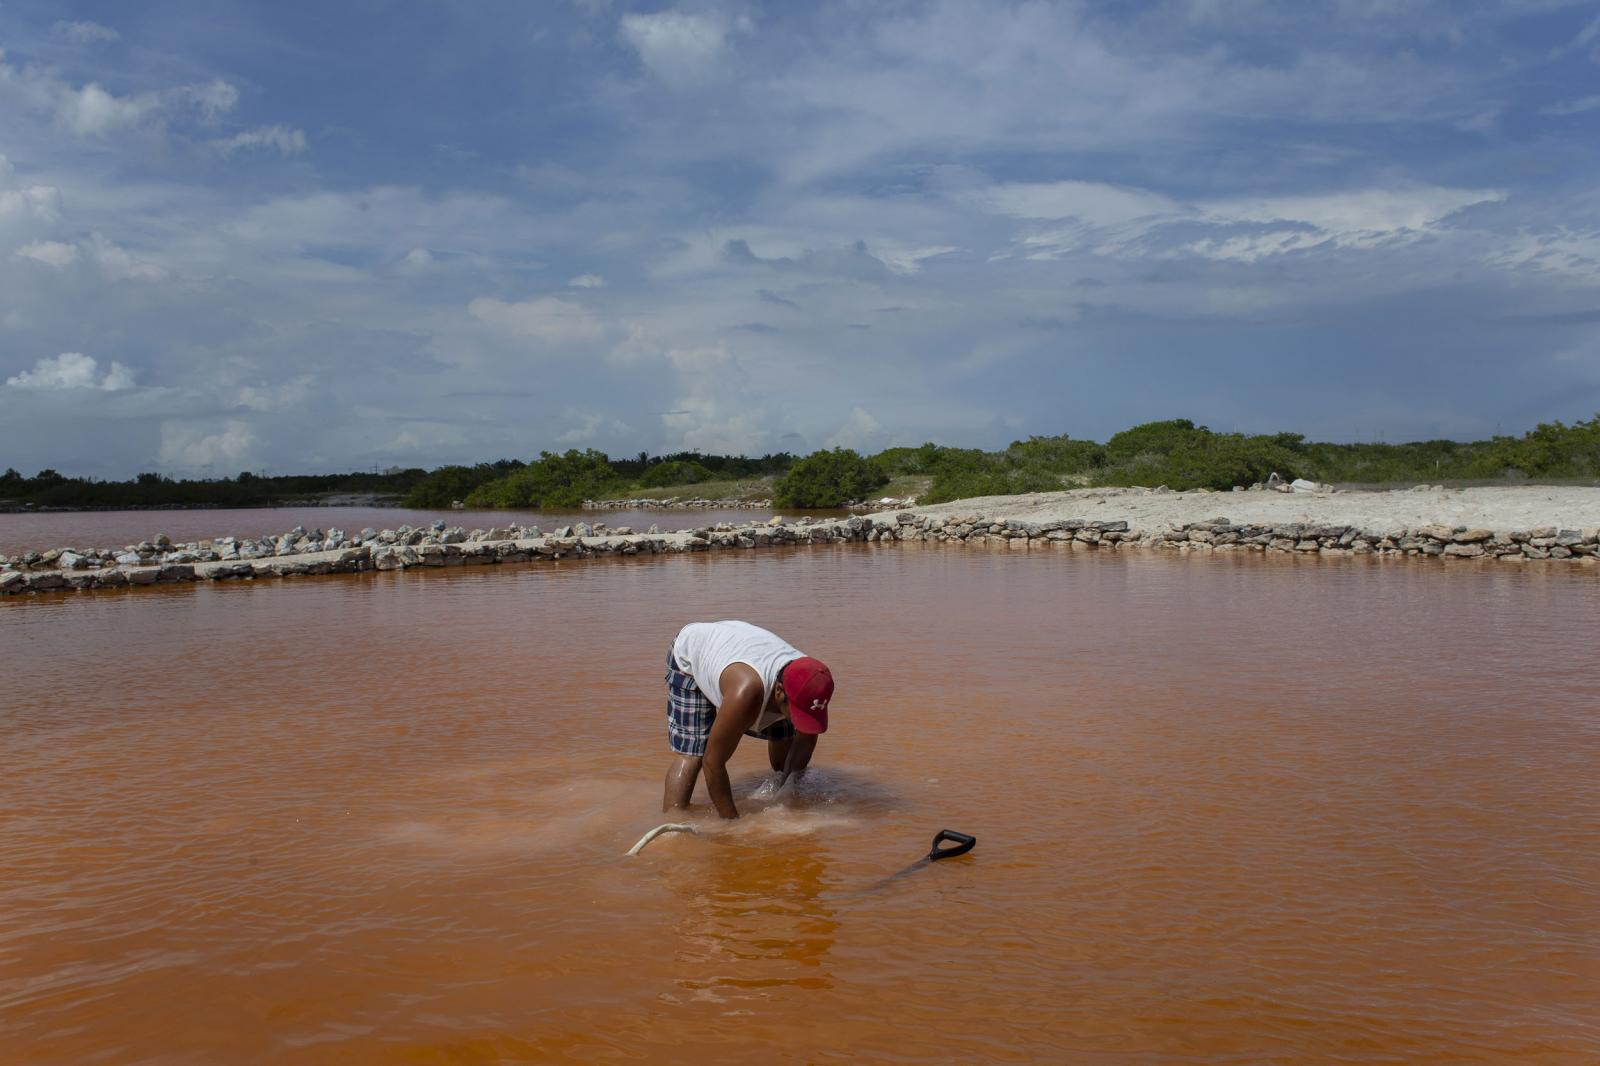 A worker harvest salt in  Xtampú, Yucatan state, Mexico, on Saturday, Oct. 26, 2019. Photographer: Koral Carballo/Bloomberg